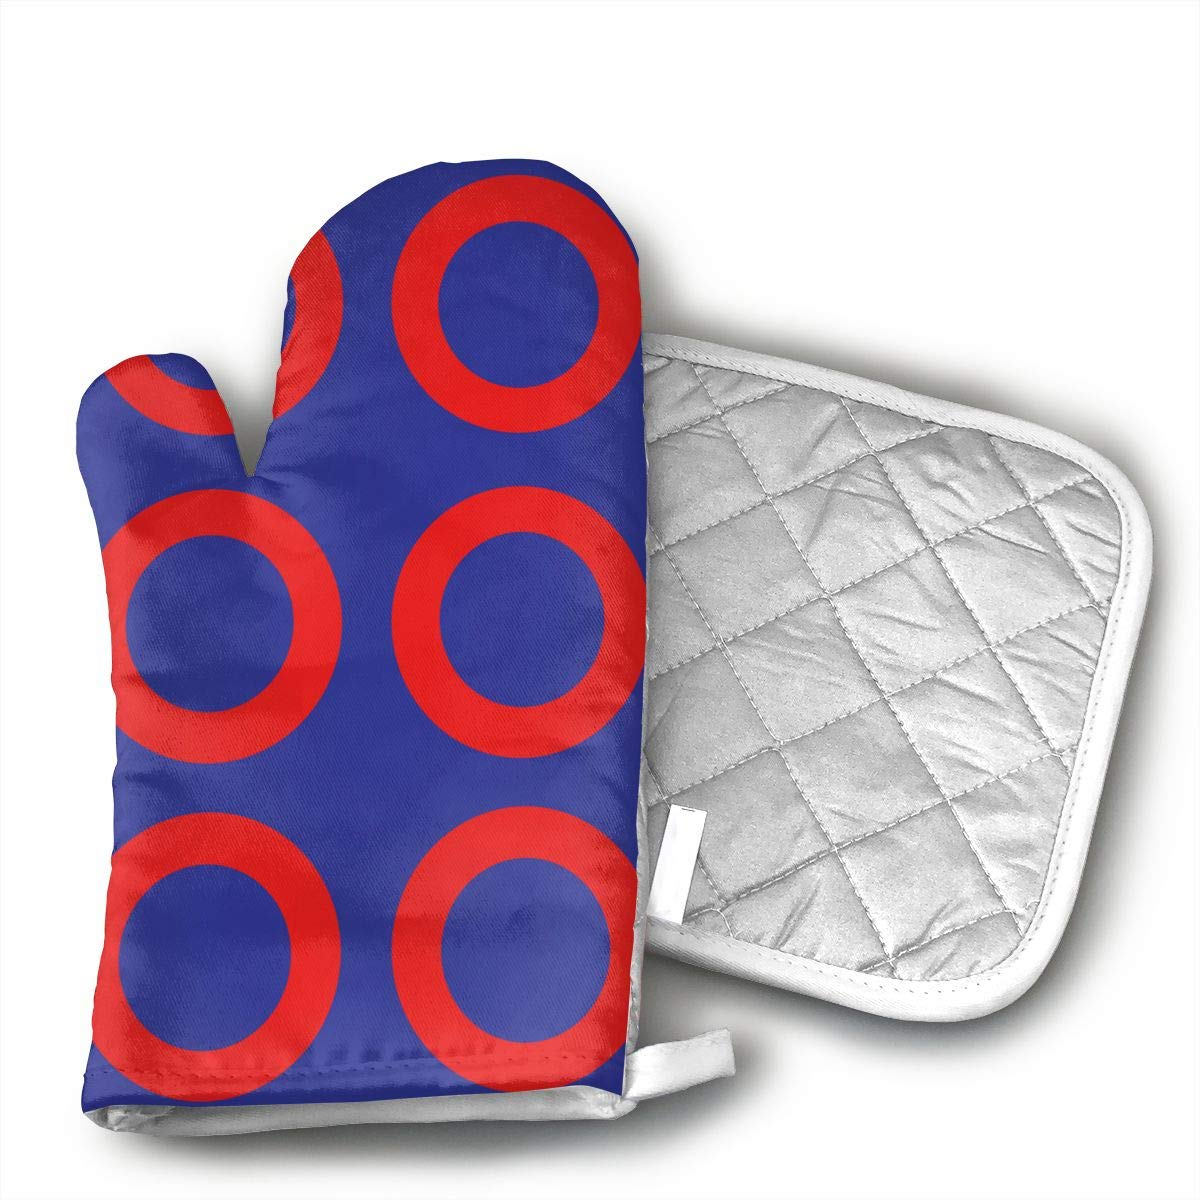 HAIQLK Phish! XXL (Proper Size!) Fabric 1787 Oven Mitts Non-Slip for Home Kitchen Cooking Barbecue Microwave for Women/Men Machine Washable BBQ